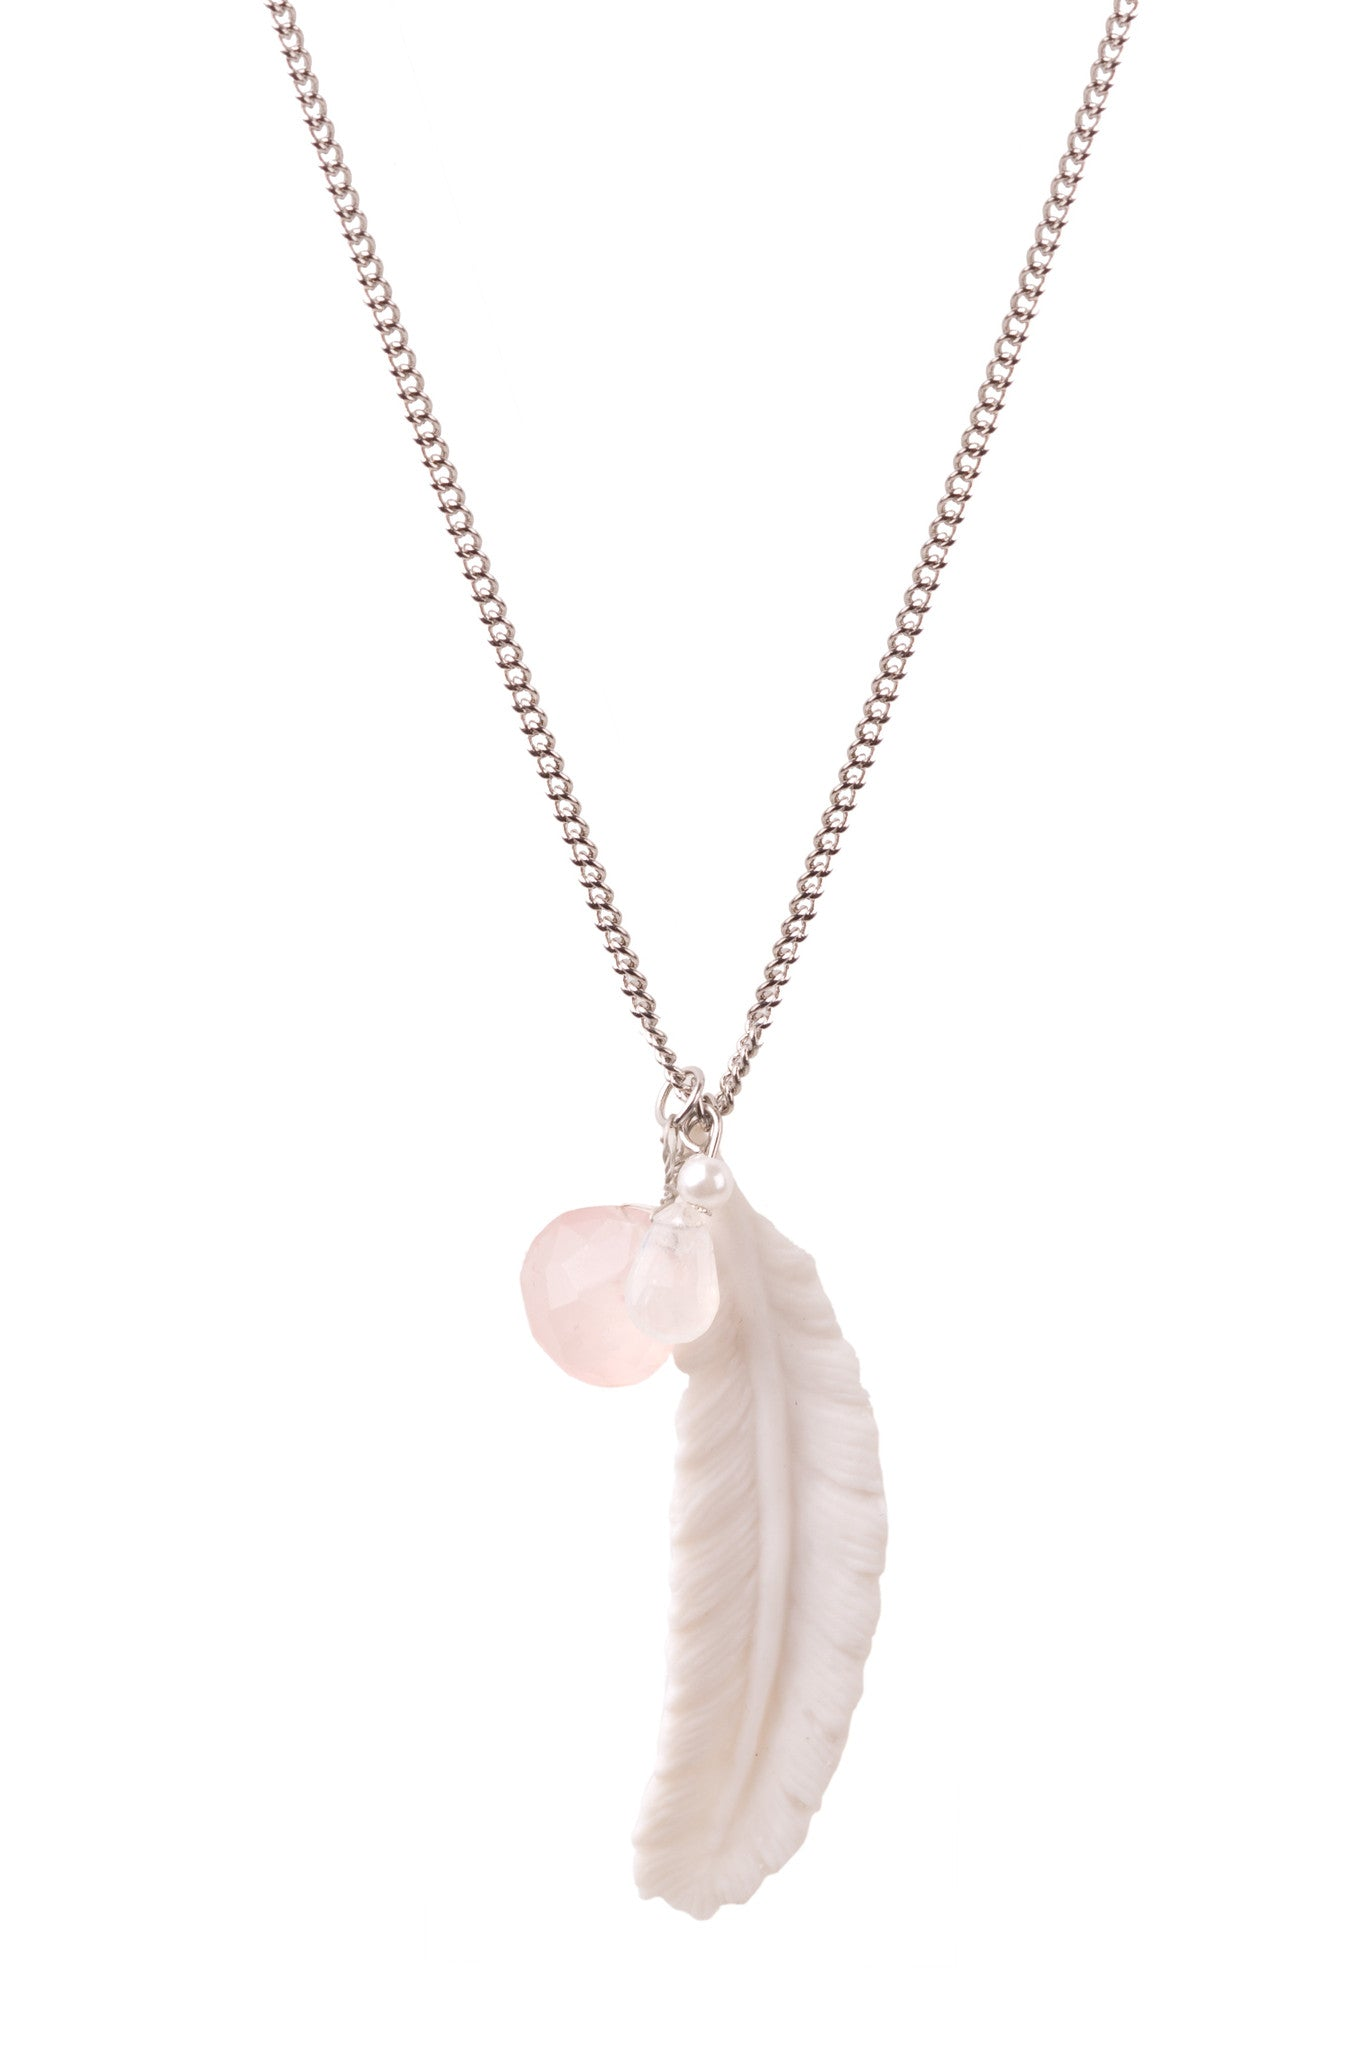 Porcelain Feather, Pearl and Faceted Stone Charm Necklace